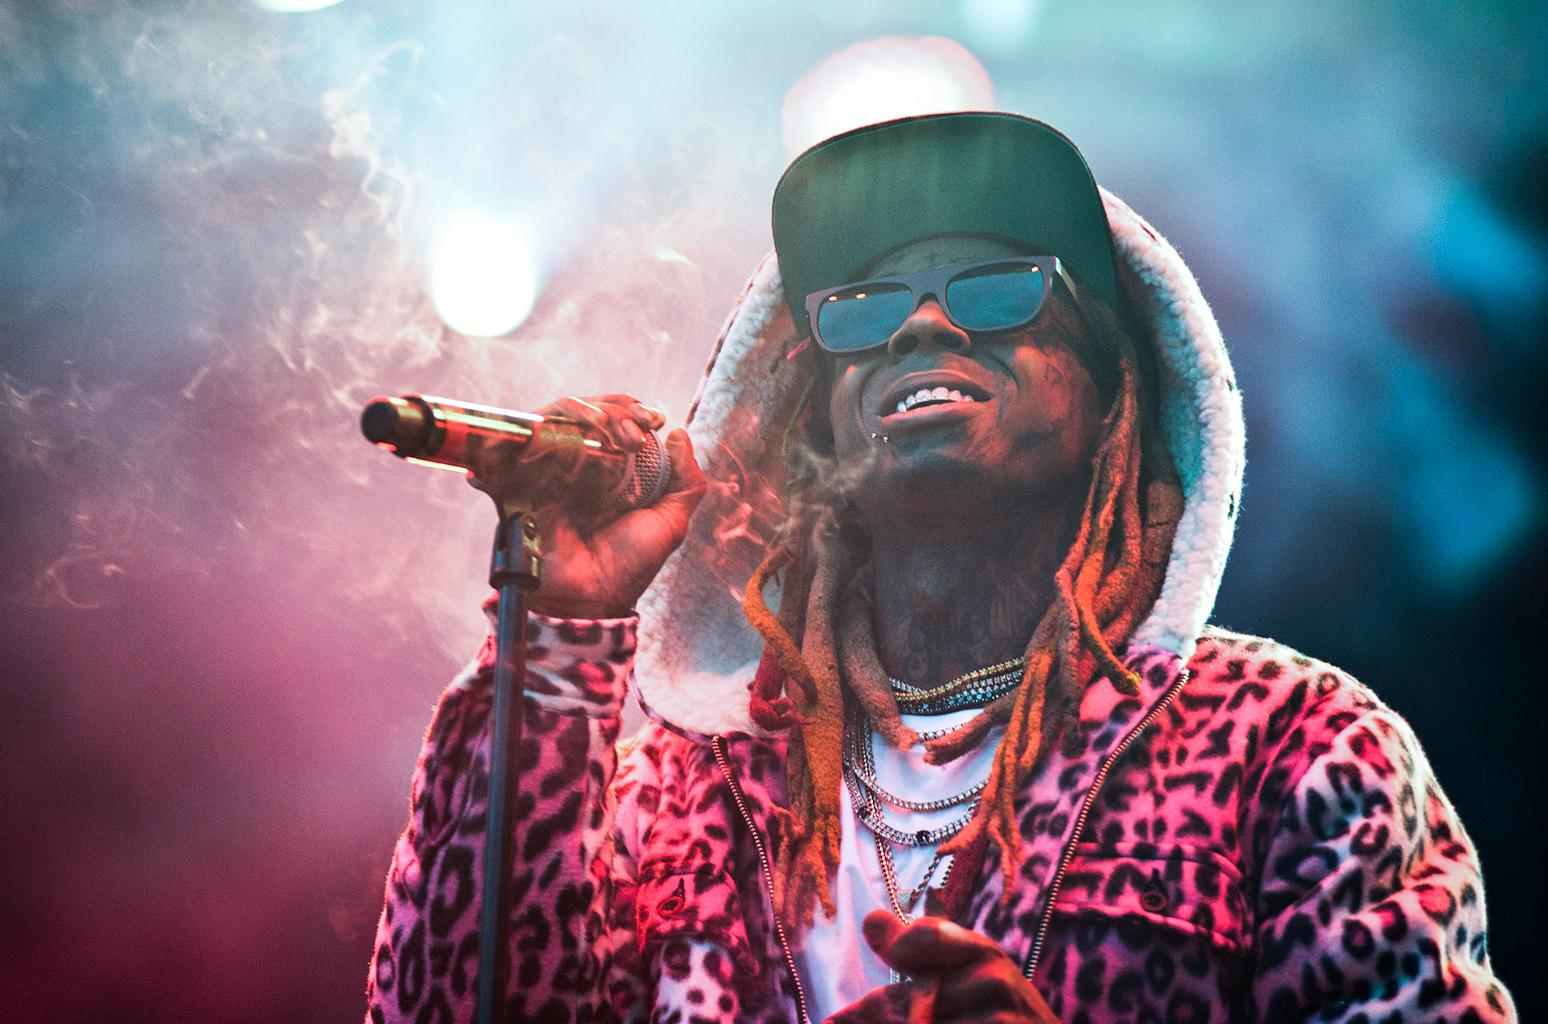 Lil Wayne Canceled A Tampa Bay Concert And Disappointed Fans